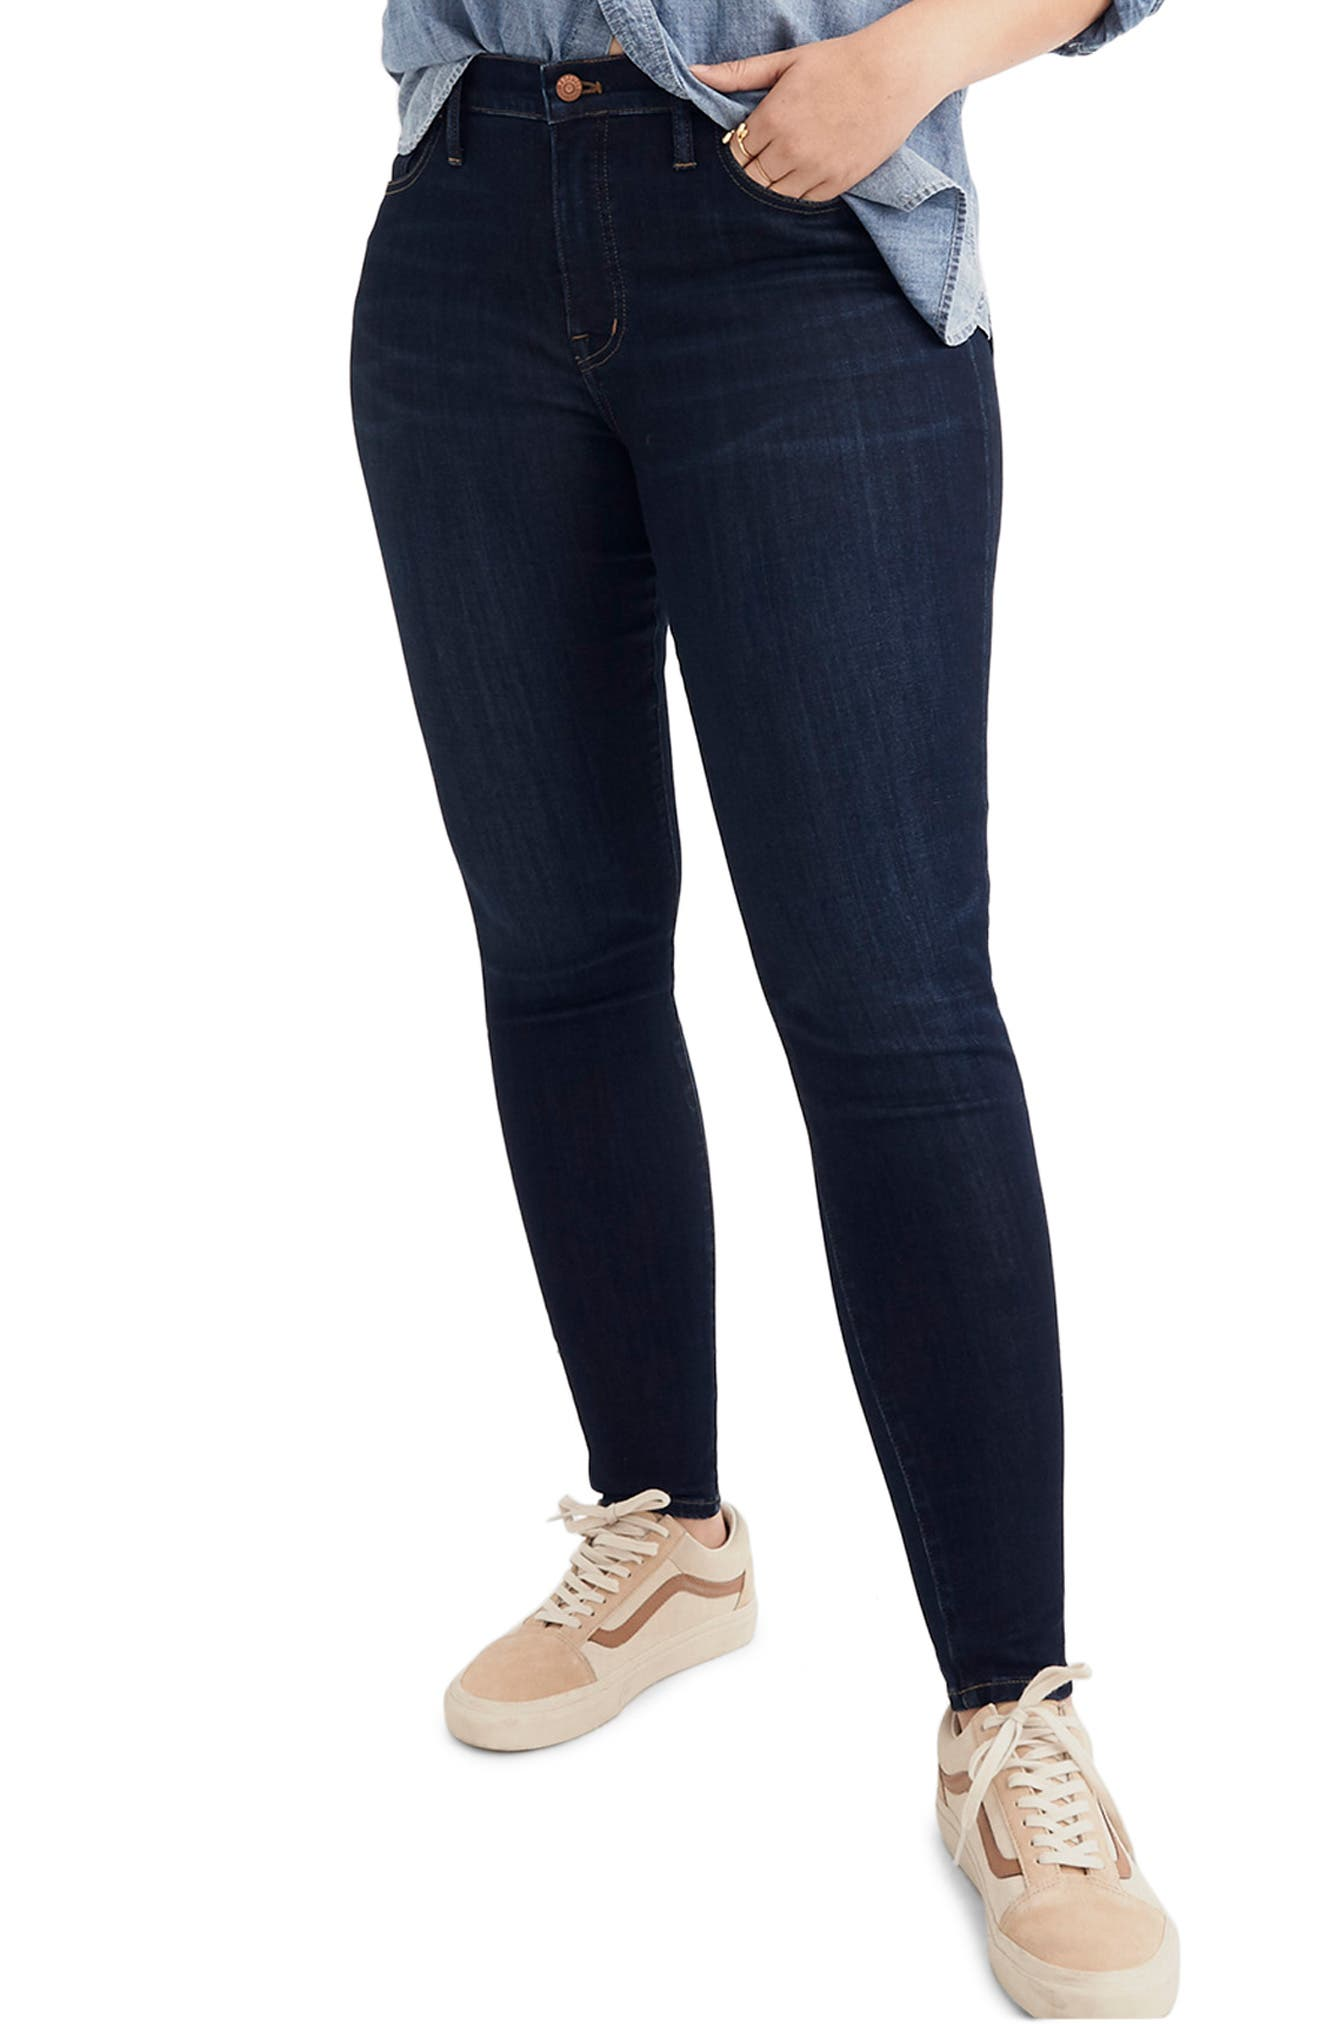 9-Inch High Rise Skinny Jeans,                             Alternate thumbnail 2, color,                             LARKSPUR